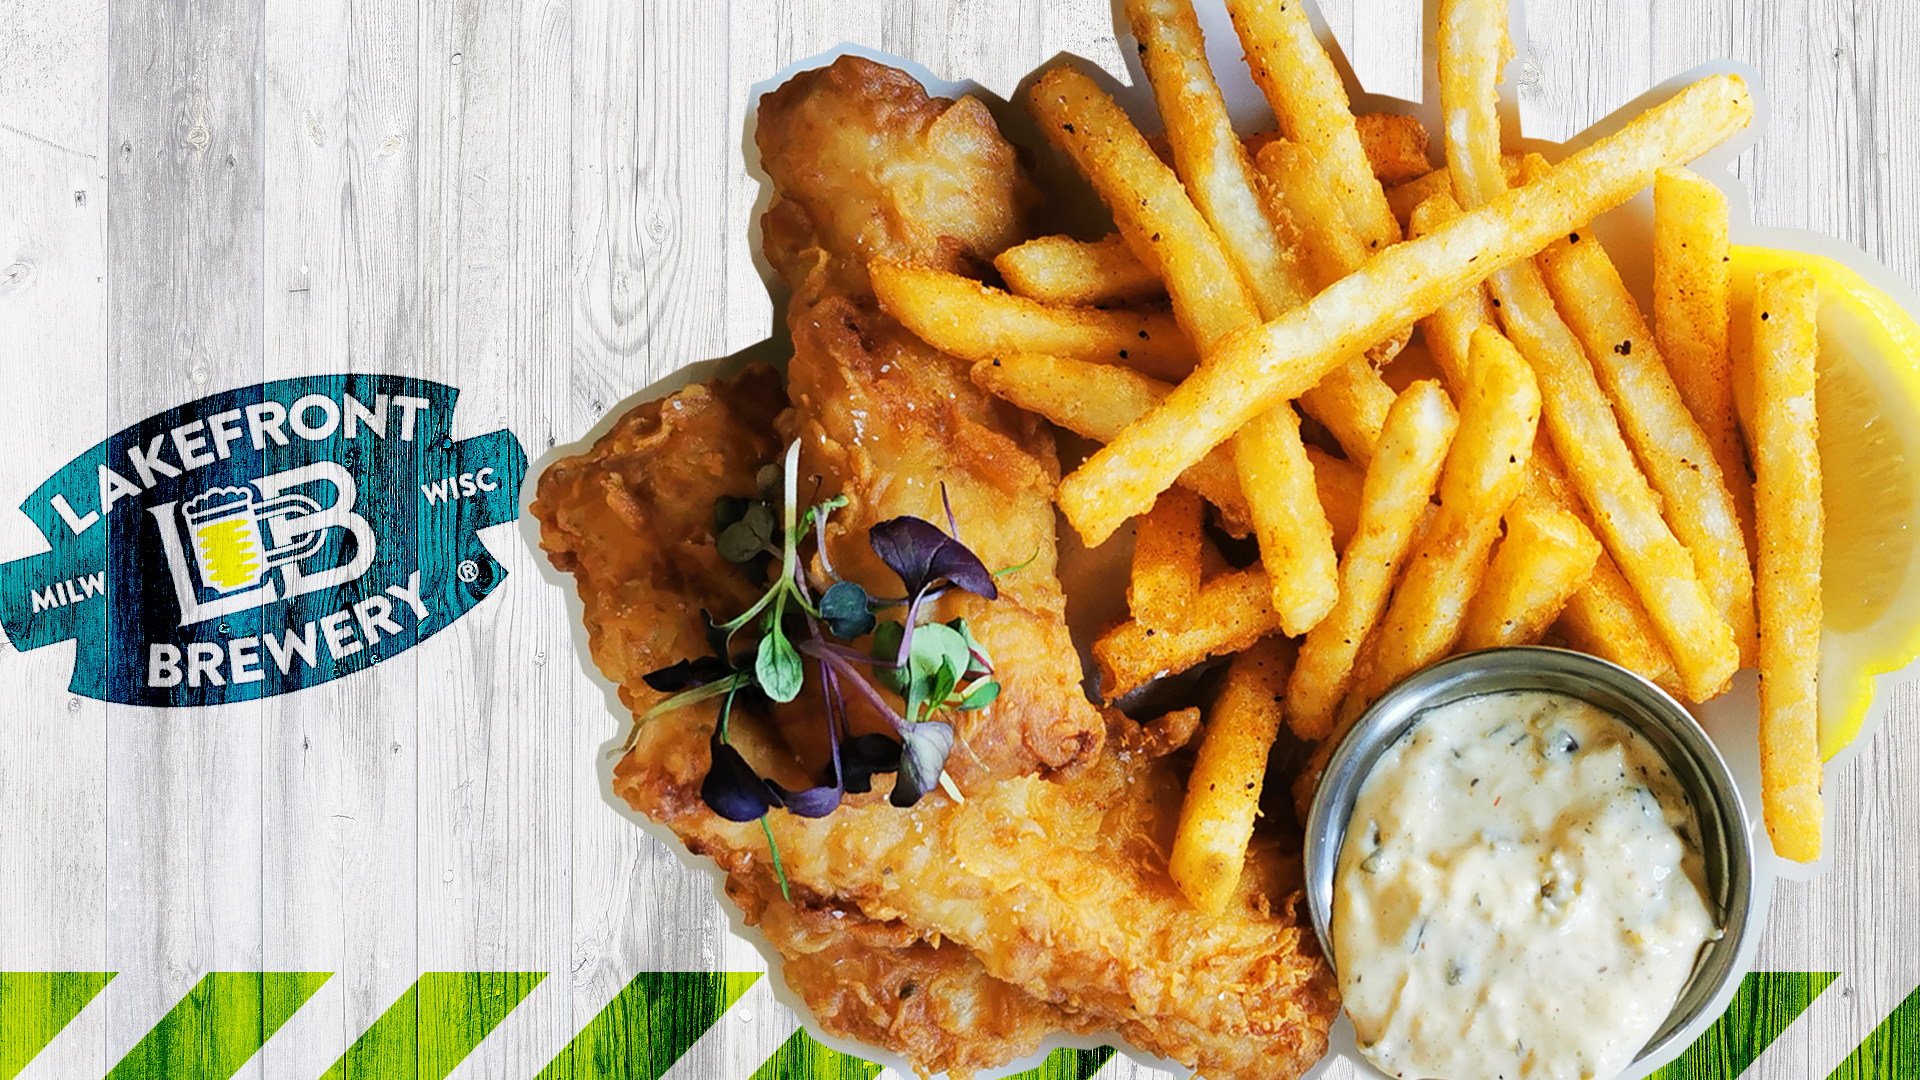 The Friday Fish Fry is Back at Lakefront Brewery!